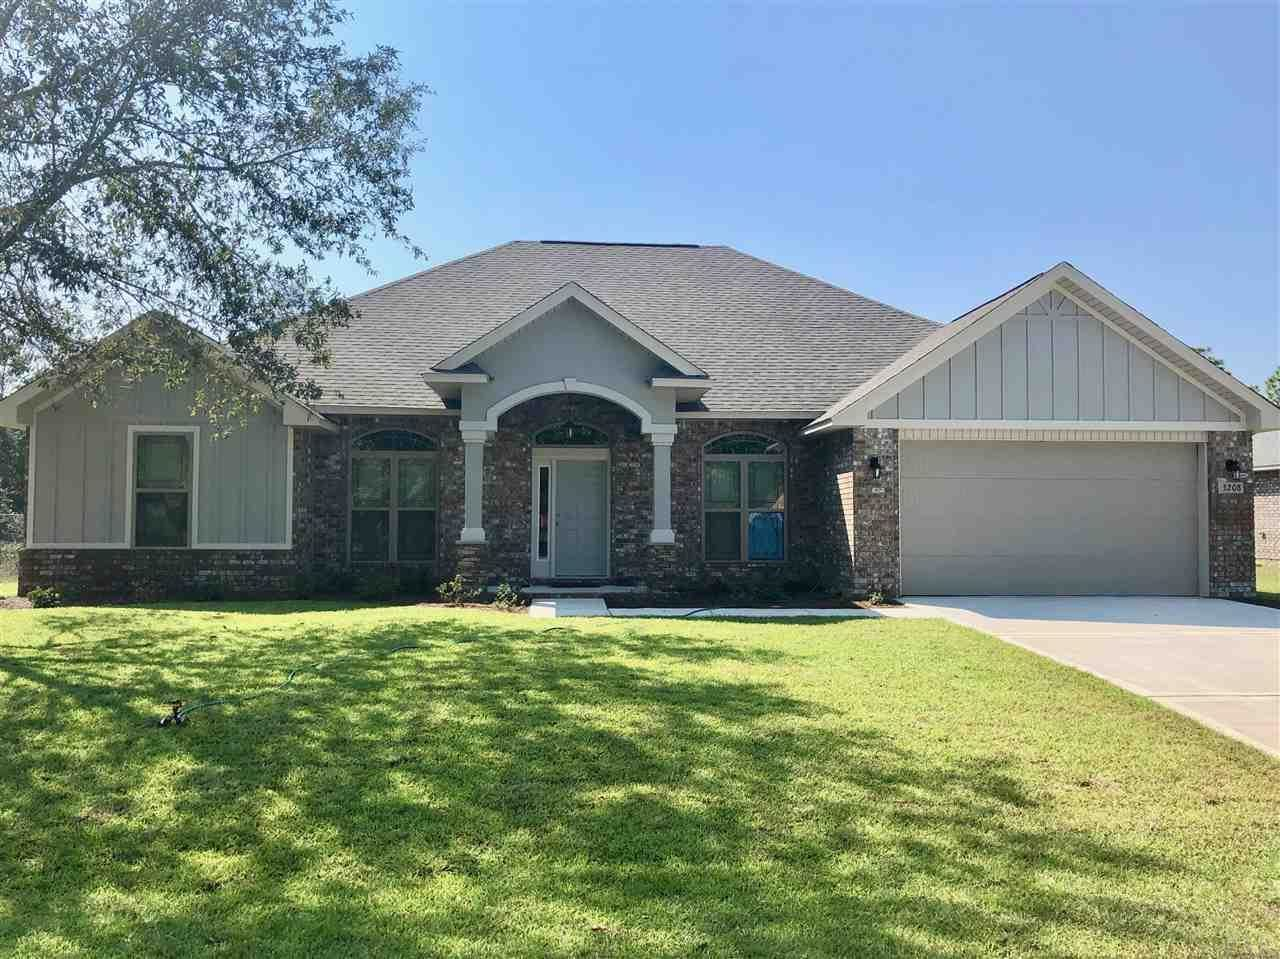 Photo for 3208 OXMORE DR, CRESTVIEW, FL 32539 (MLS # 548619)